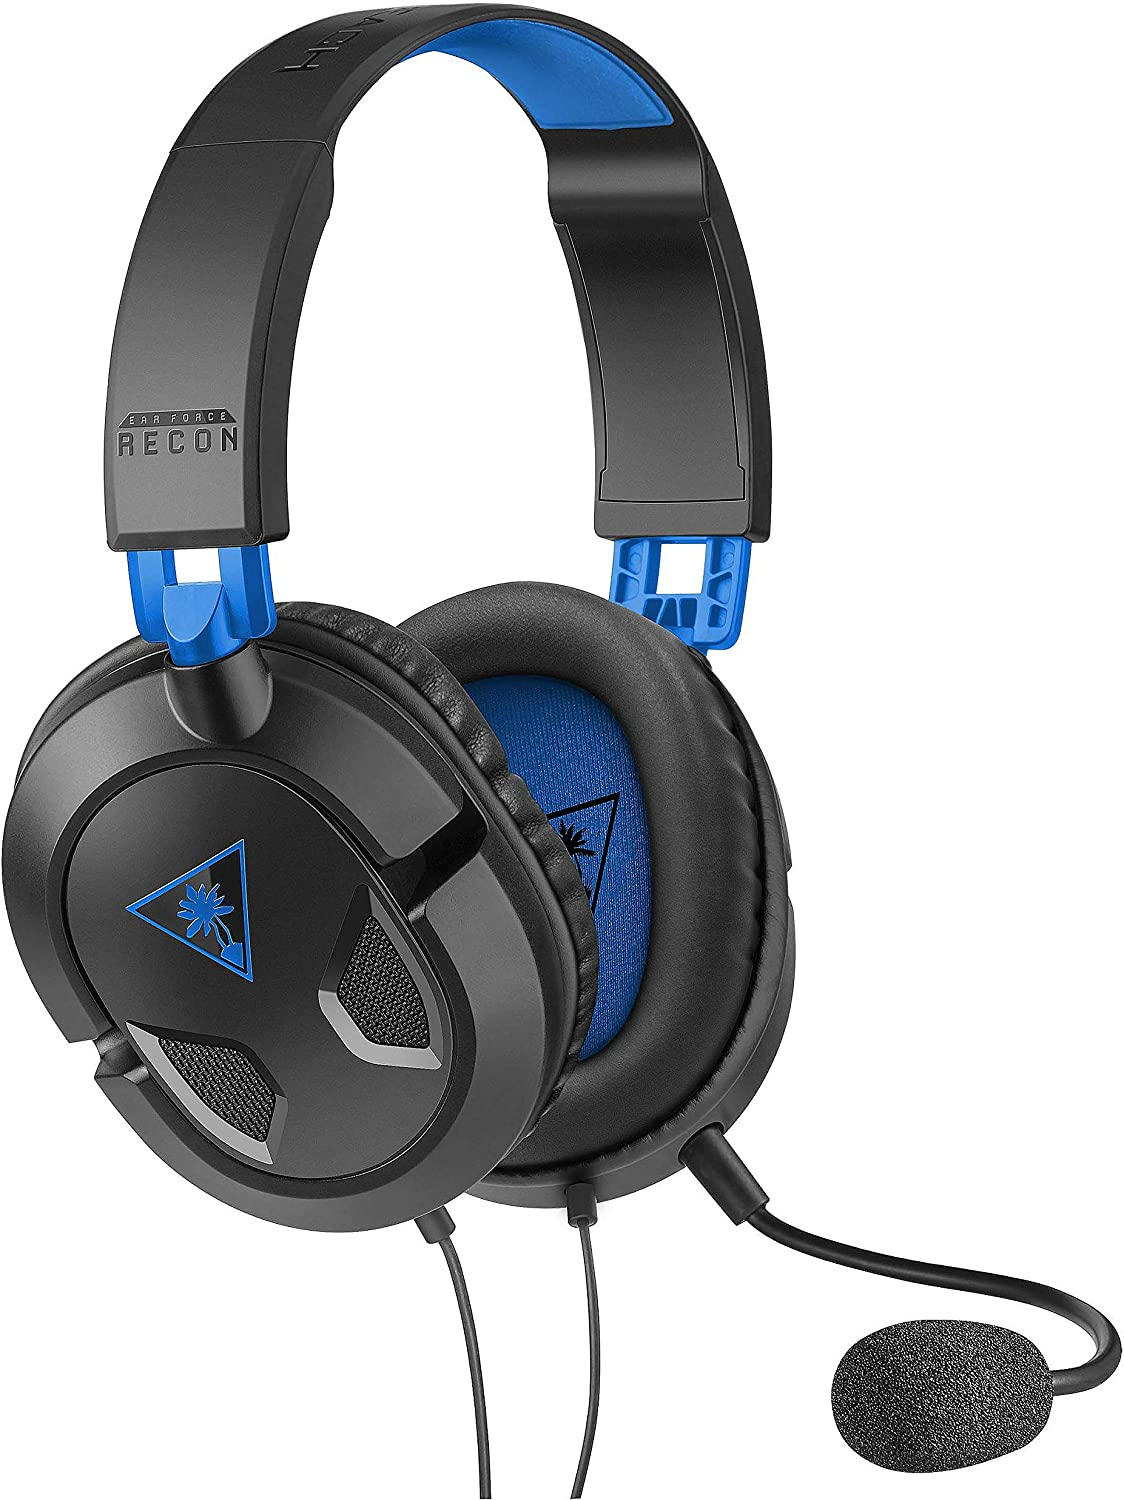 Turtle Beach Recon 50P Auriculares Gaming PS4, PS5, Xbox One, Nintendo Switch y PC, Negro / Azul: Amazon.es: Videojuegos